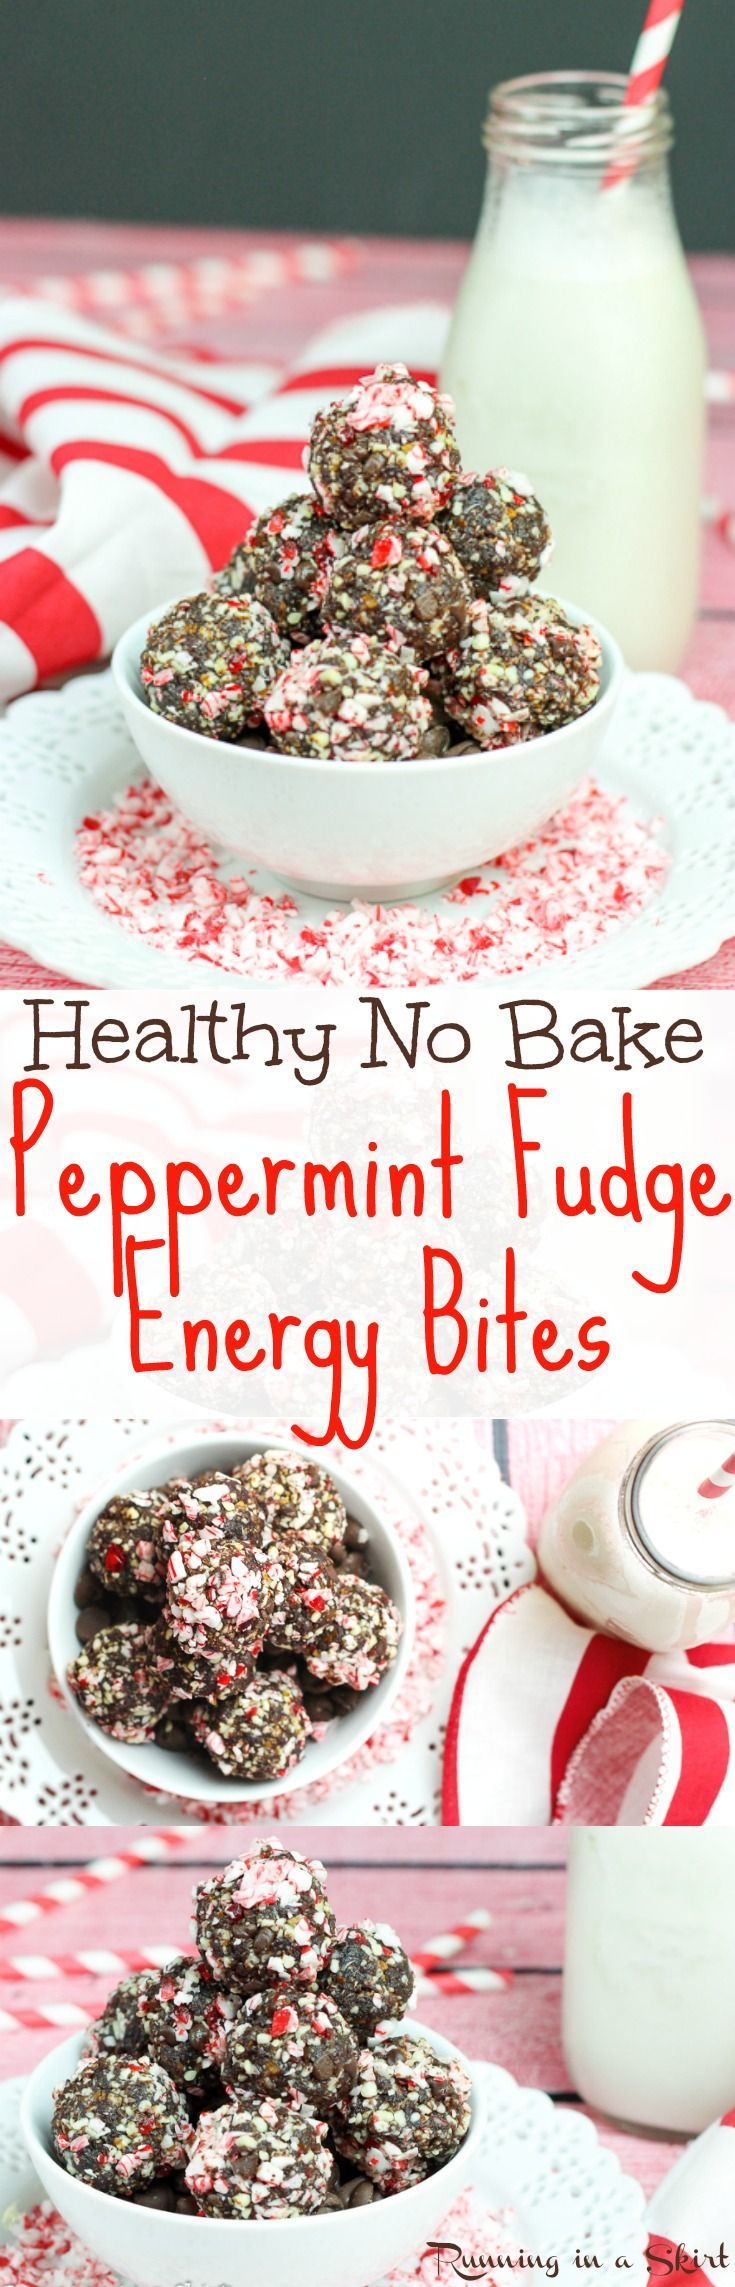 Healthy Peppermint Fudge No Bake Energy Bites recipe. Easy, clean eating chocolate holiday recipe with dates! Raw natural sweetness without added sugar. #Christmas #snacks